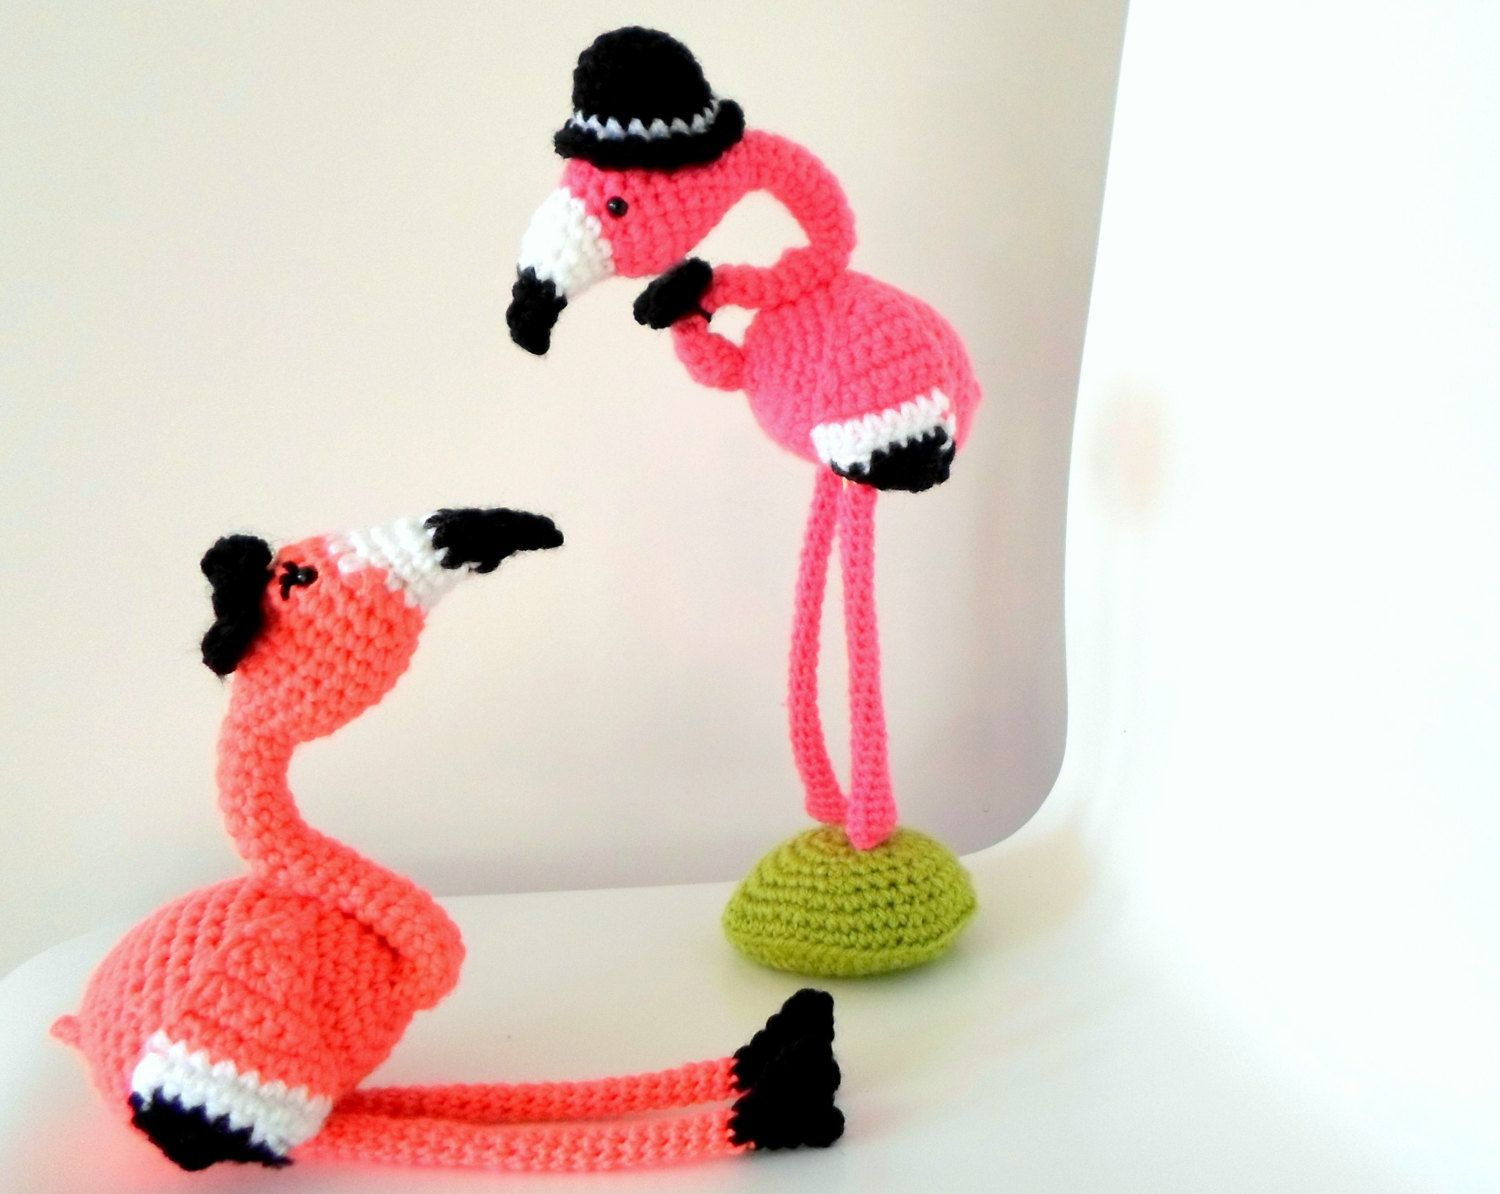 Mr & Mrs Flamingo crochet amigurumi pdf pattern INSTANT DOWNLOAD ...